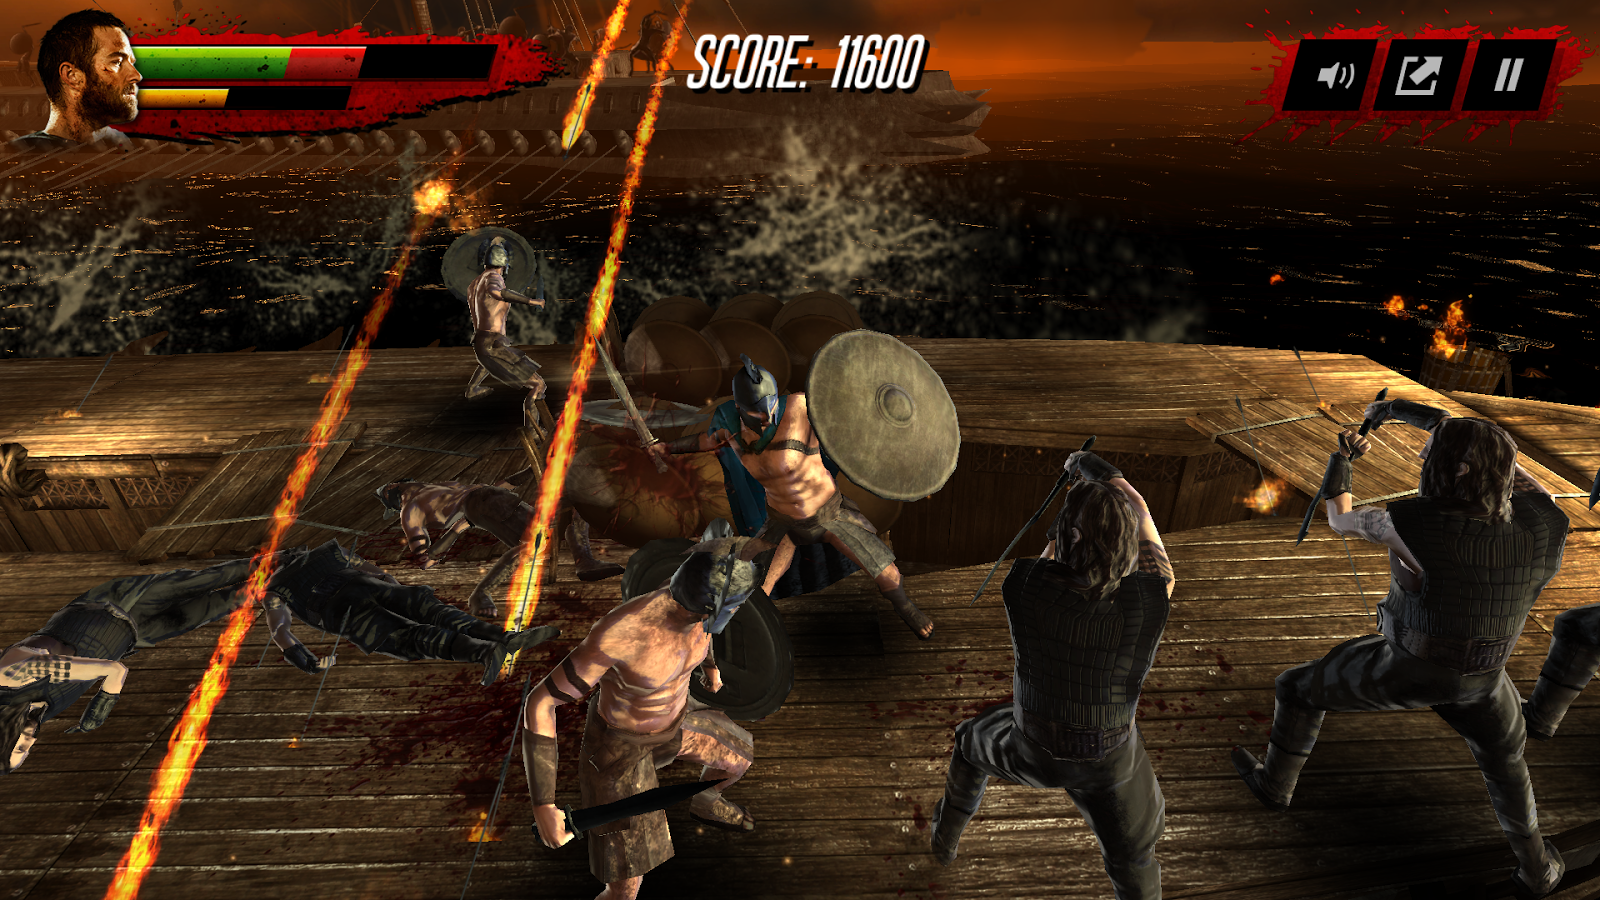 300 Seize Your Glory android games apk